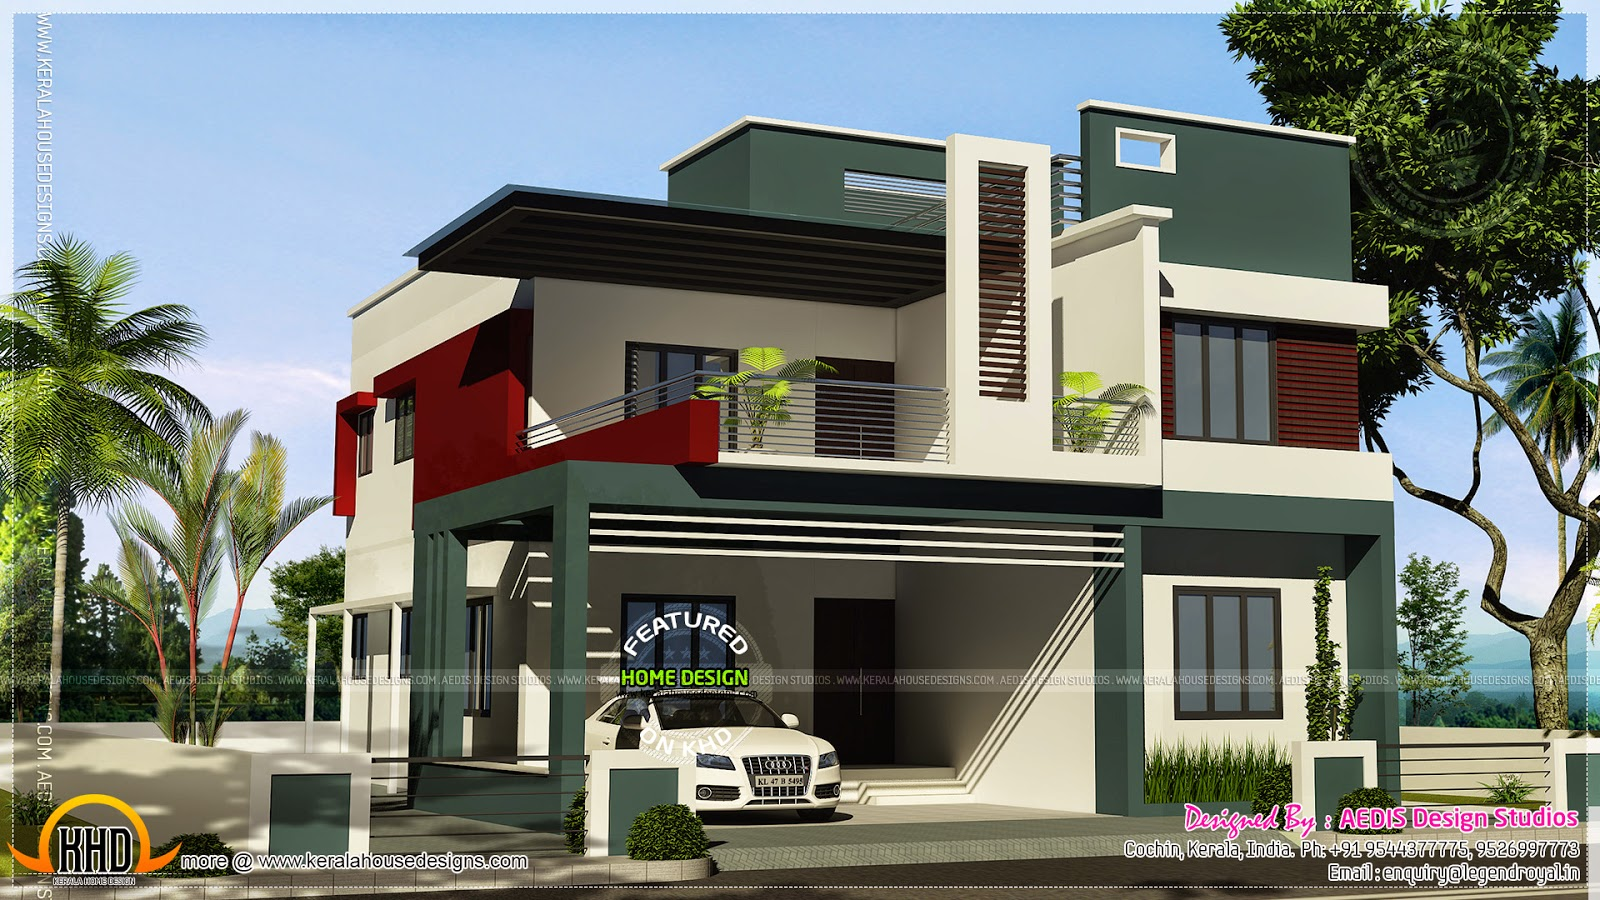 Duplex house plans south indian style home photo style for House architecture styles in india